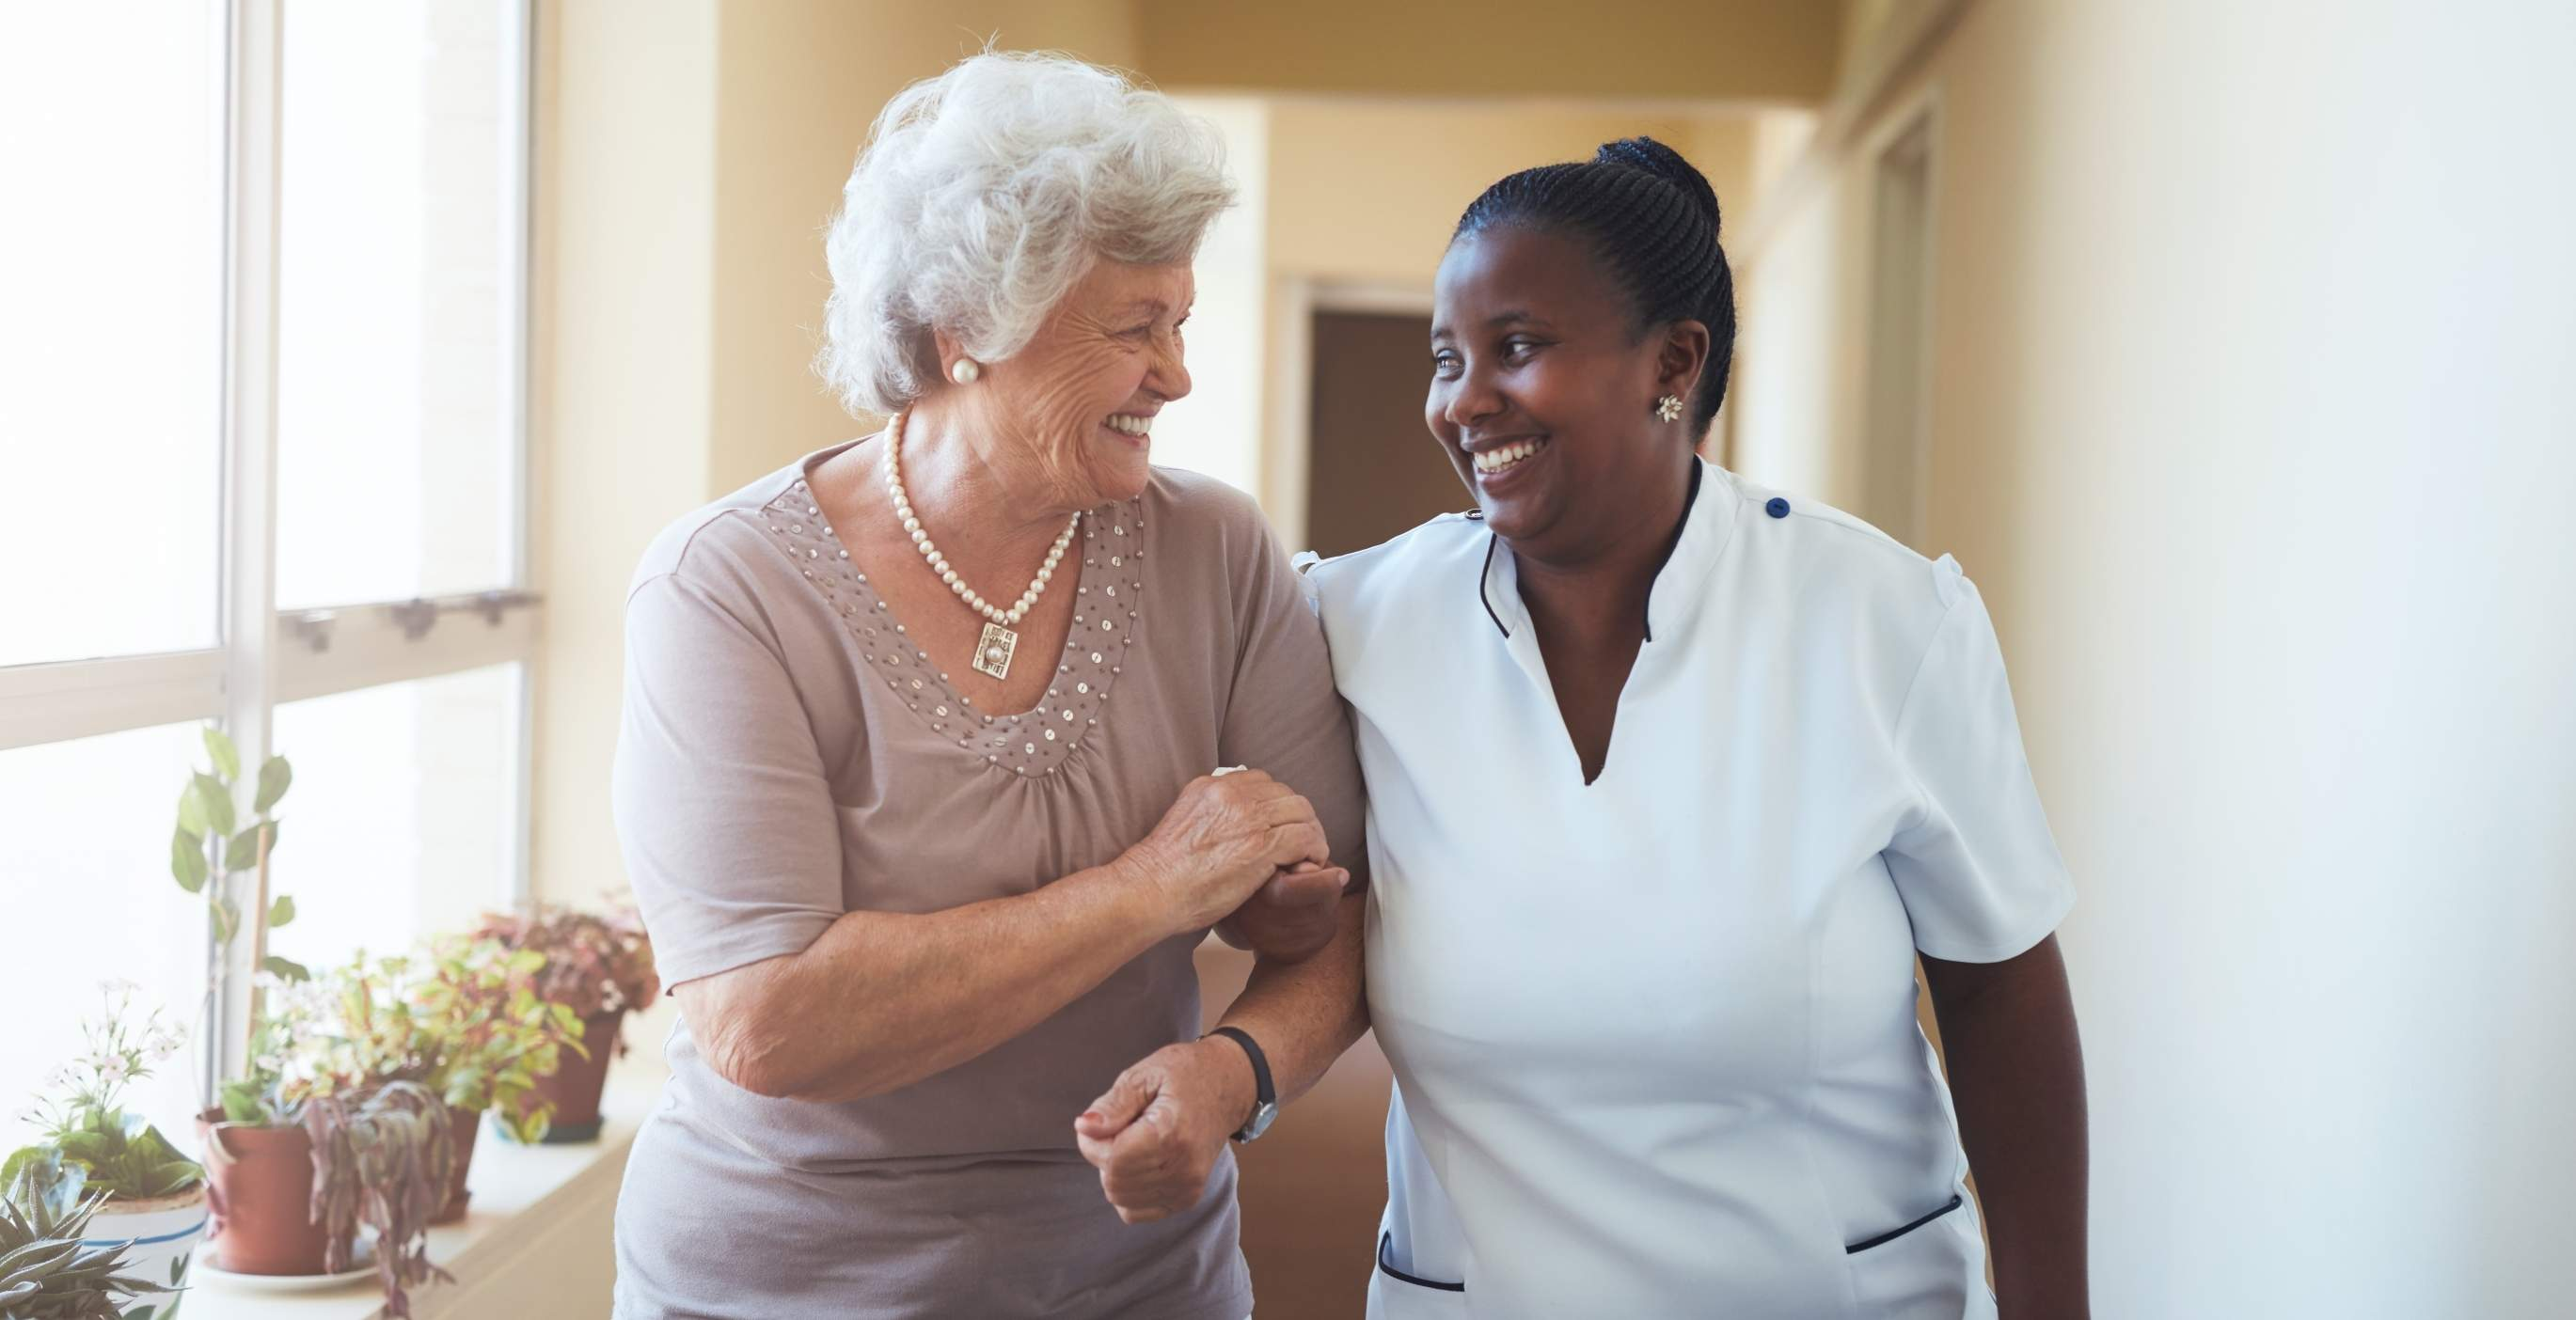 Smiling Home Caregiver And Senior Woman Walking Together to new beginnings